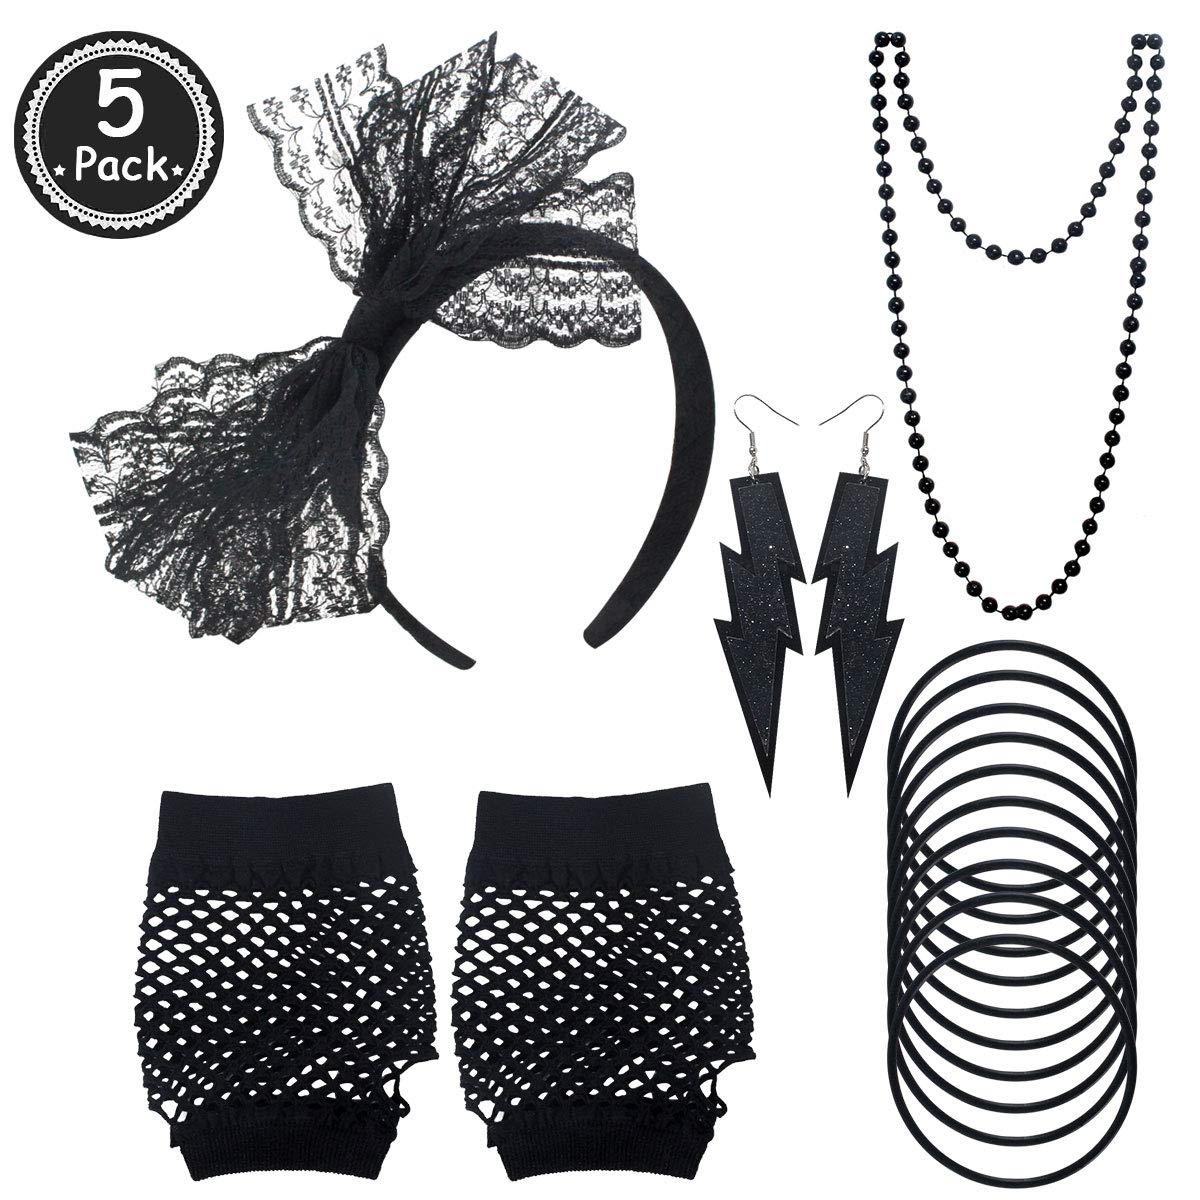 Women 80s Fancy Dress Outfit Costume Neon Earrings Lace Headband Fishnet Gloves For Ladies Night Out 80s Party 80s Accessories Set